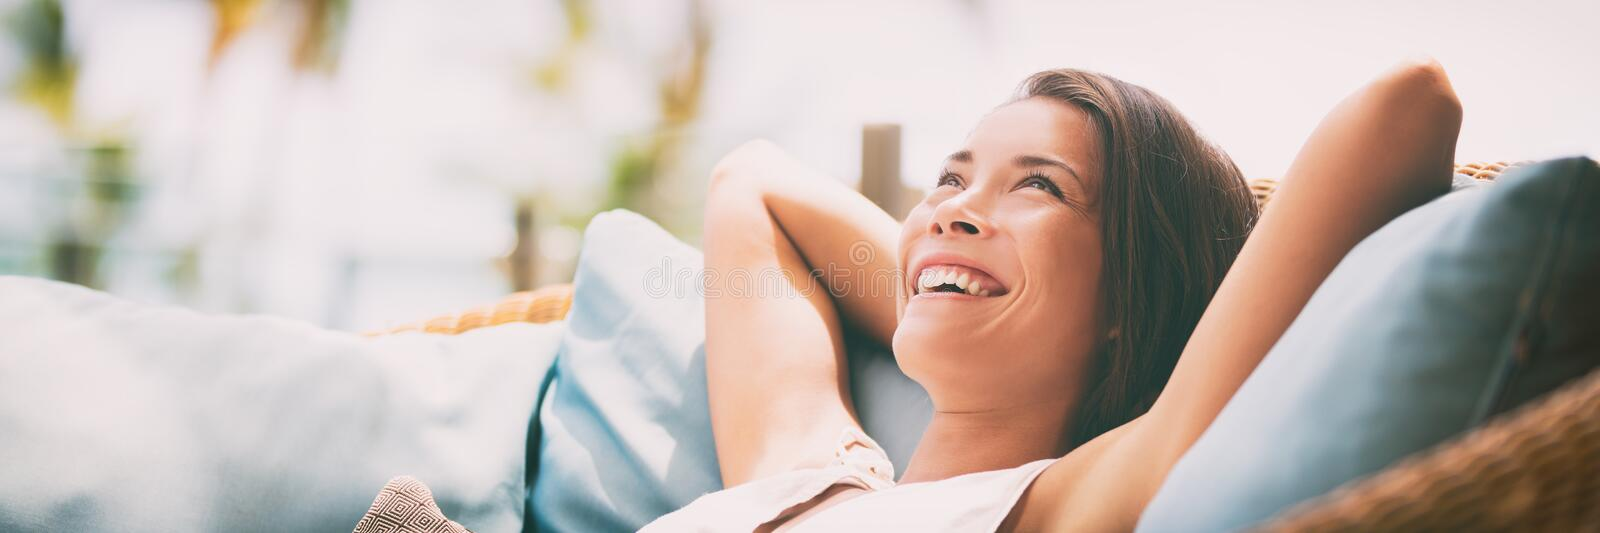 Relaxing home lifestyle happy woman in relax luxury hotel room sofa lying back with arms behind head smiling. Asian girl in. Comfortable lounging chair travel stock photo